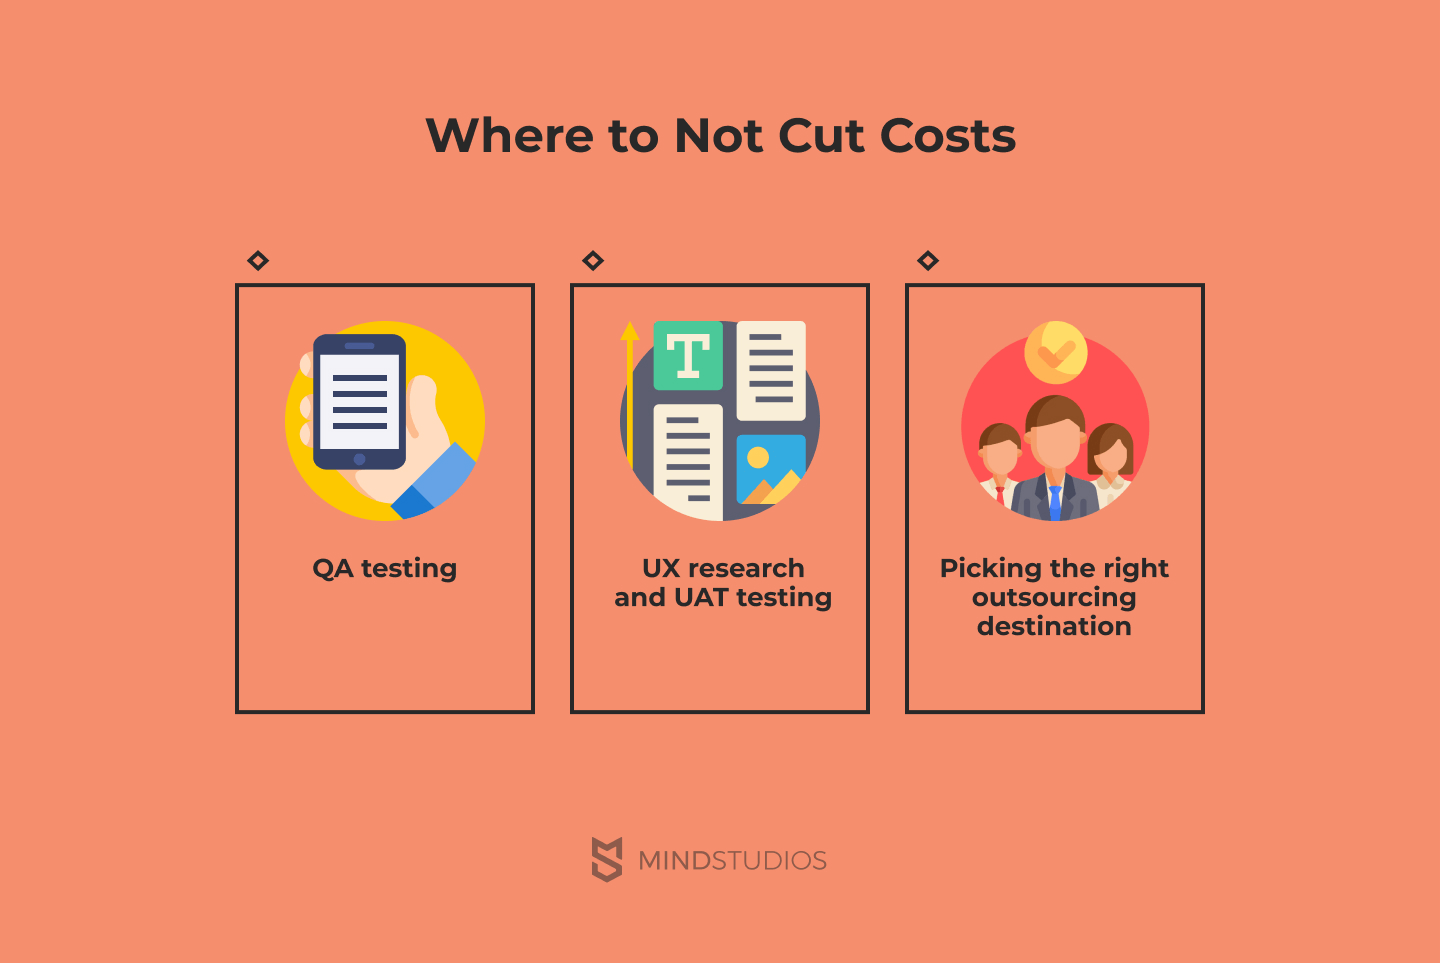 Where to not cut costs